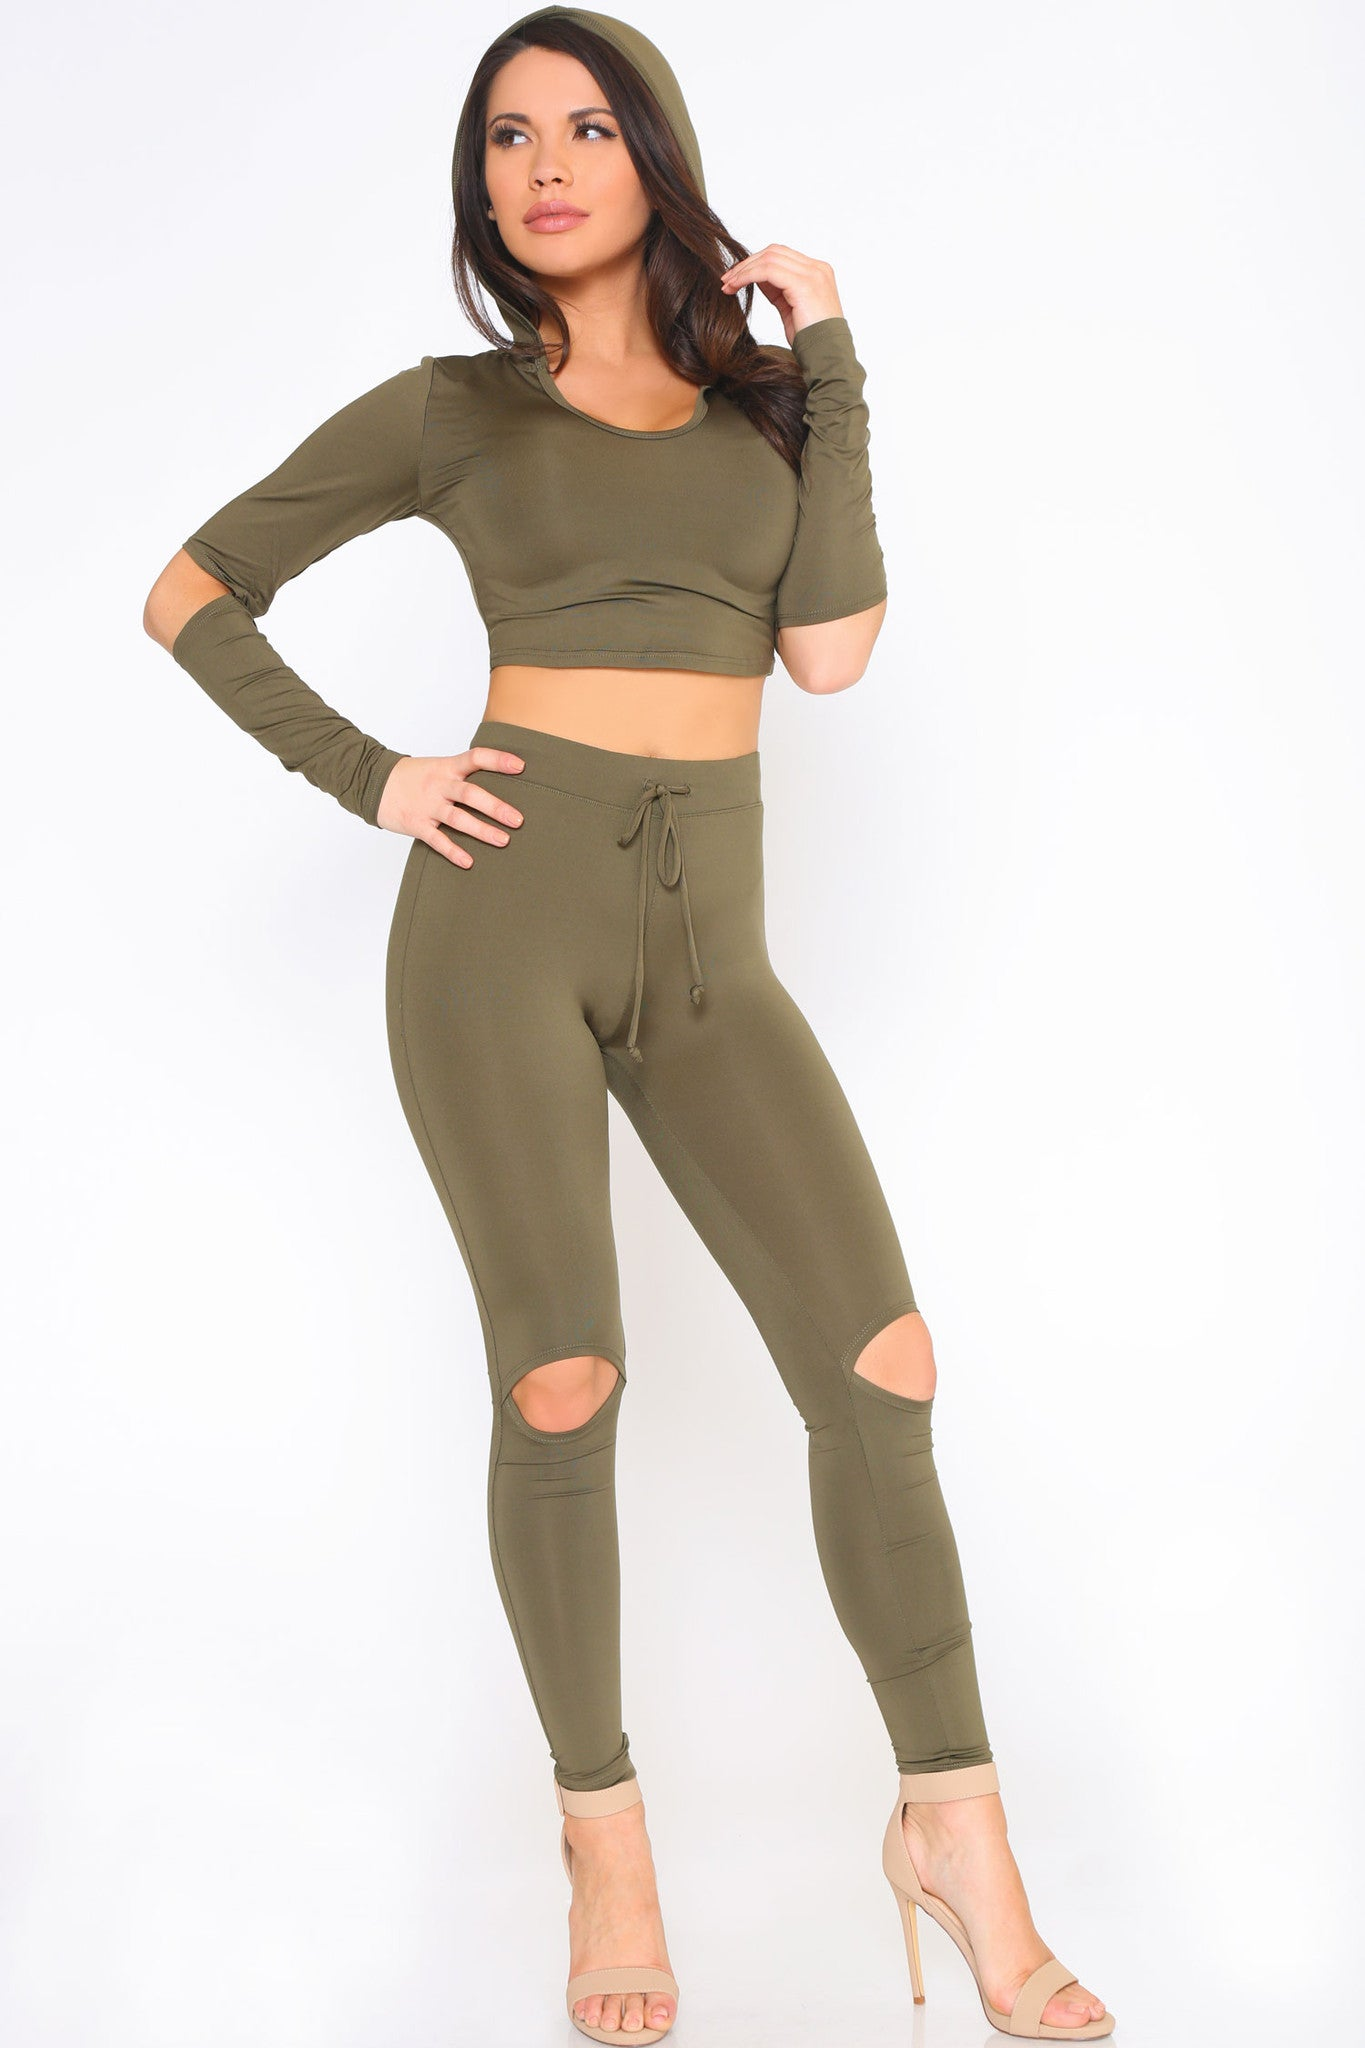 YONCE CROP TOP AND LEGGINGS SET - Glam Envy - 3